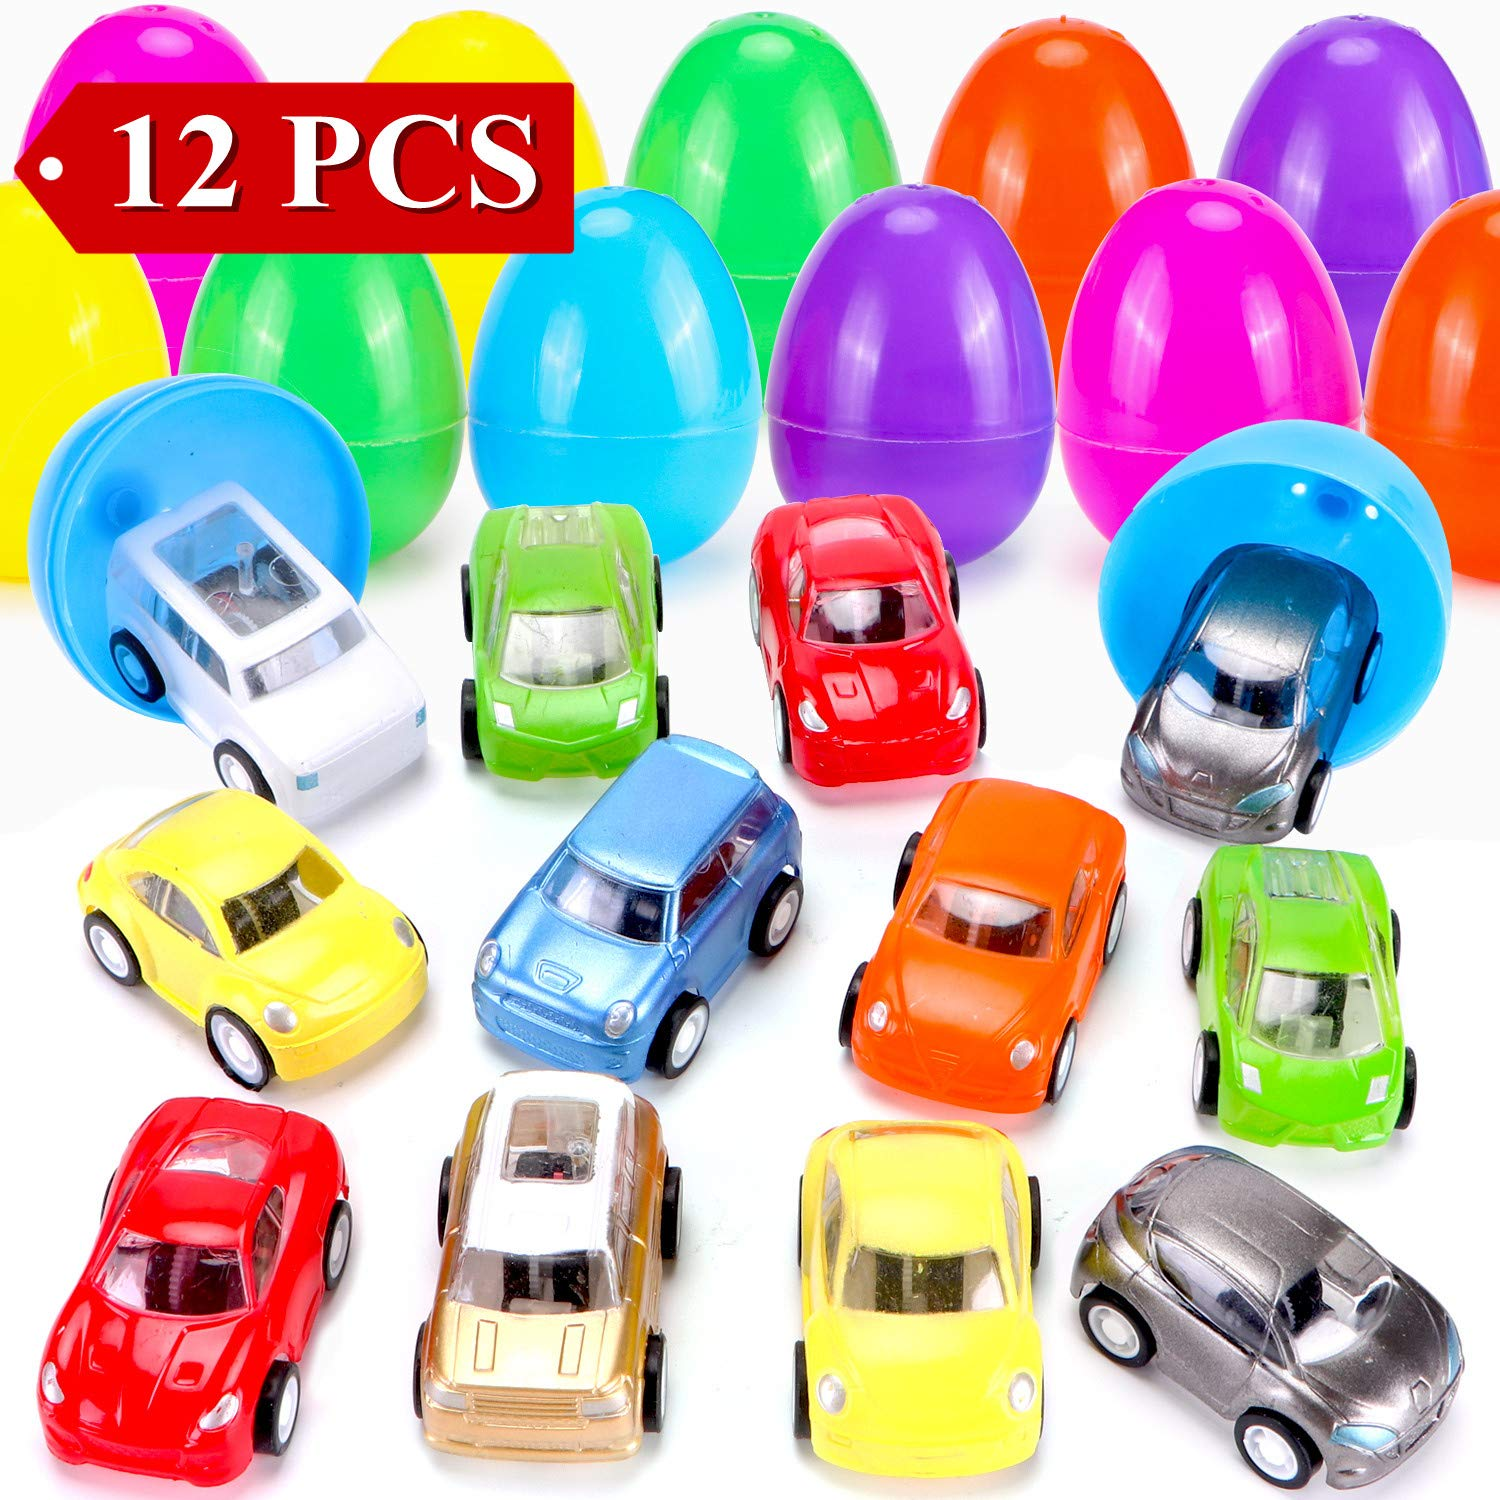 12 Pcs Filled Easter Eggs with Toy Cars,3.15''-Easter Pary Favor-Plastic Prefilled Eggs with Mini Pull Back Vehicles Toys for Toddlers